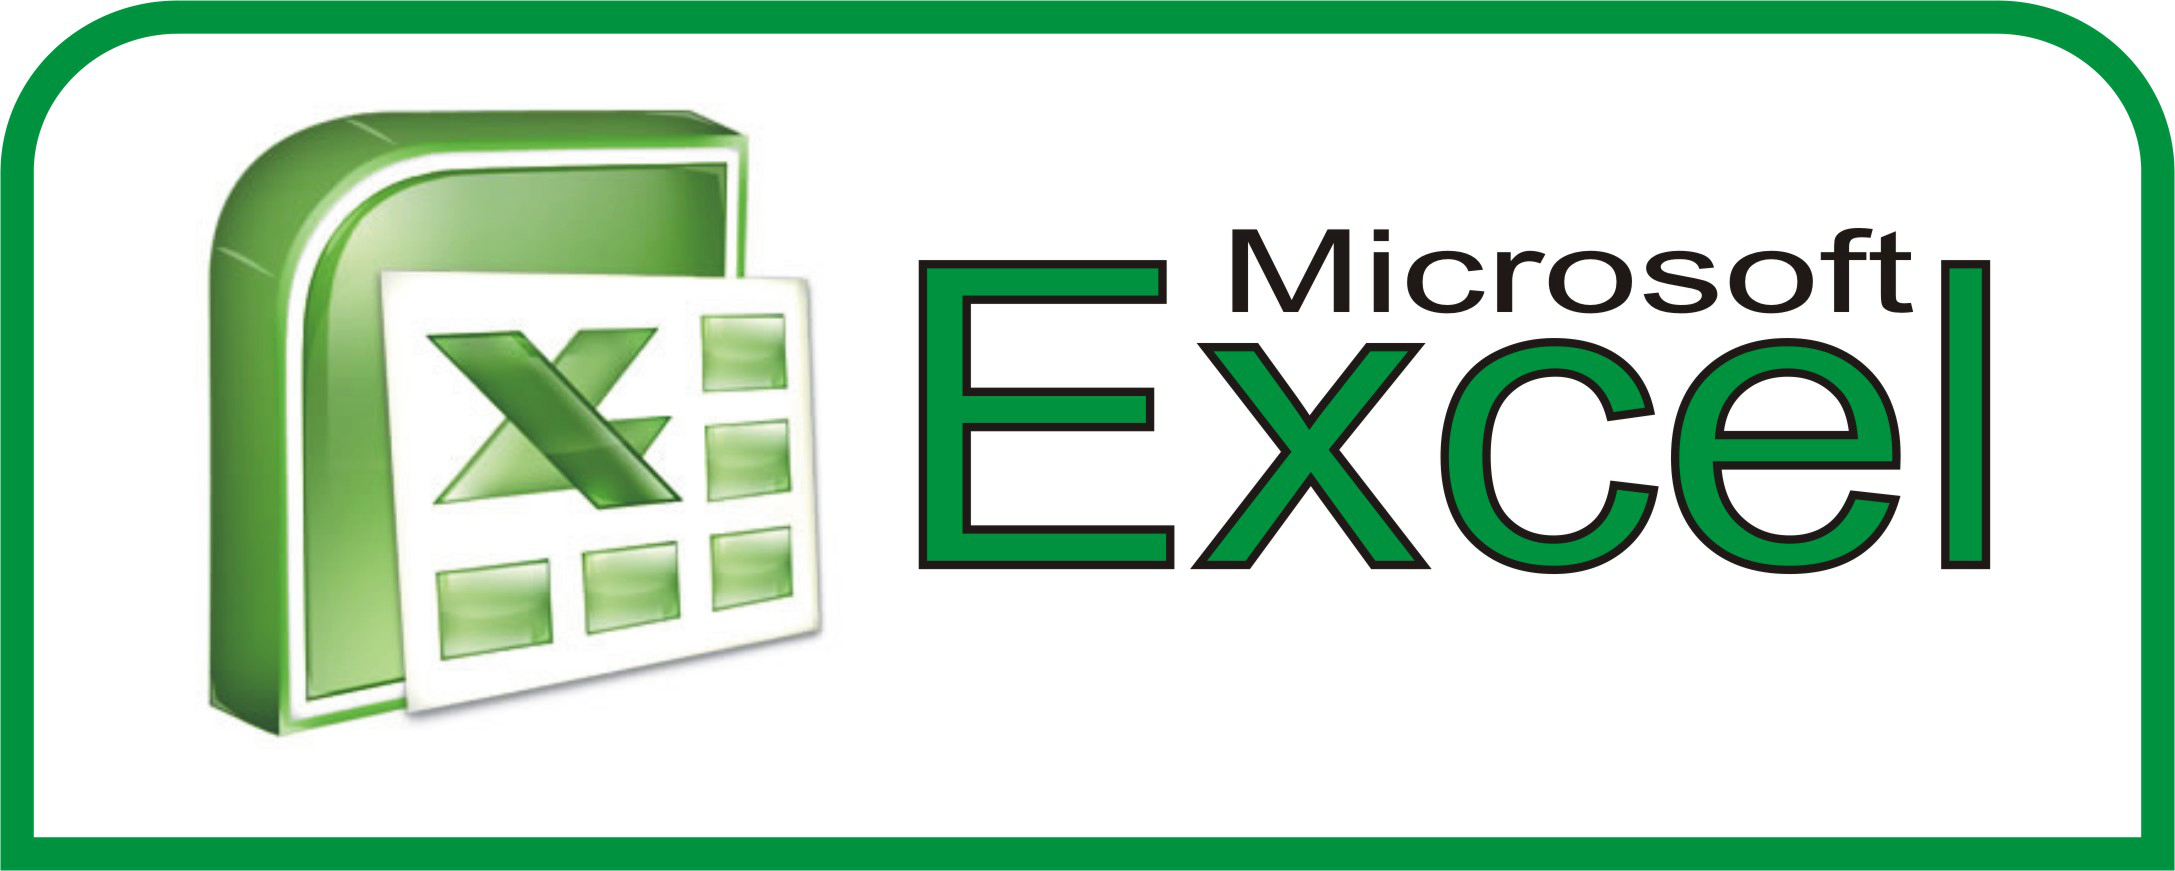 Ediblewildsus  Seductive  Excel Shortcuts You Probably Didnt Know About  Techdissected With Fascinating Powerpivot Excel  Besides Box And Whisker Plot Excel Furthermore Python Excel With Astonishing Subtotal Excel Also Excel Round In Addition Absolute Value In Excel And Excel Icon As Well As Excel Freeze Row Additionally Excel Urgent Care From Techdissectedcom With Ediblewildsus  Fascinating  Excel Shortcuts You Probably Didnt Know About  Techdissected With Astonishing Powerpivot Excel  Besides Box And Whisker Plot Excel Furthermore Python Excel And Seductive Subtotal Excel Also Excel Round In Addition Absolute Value In Excel From Techdissectedcom